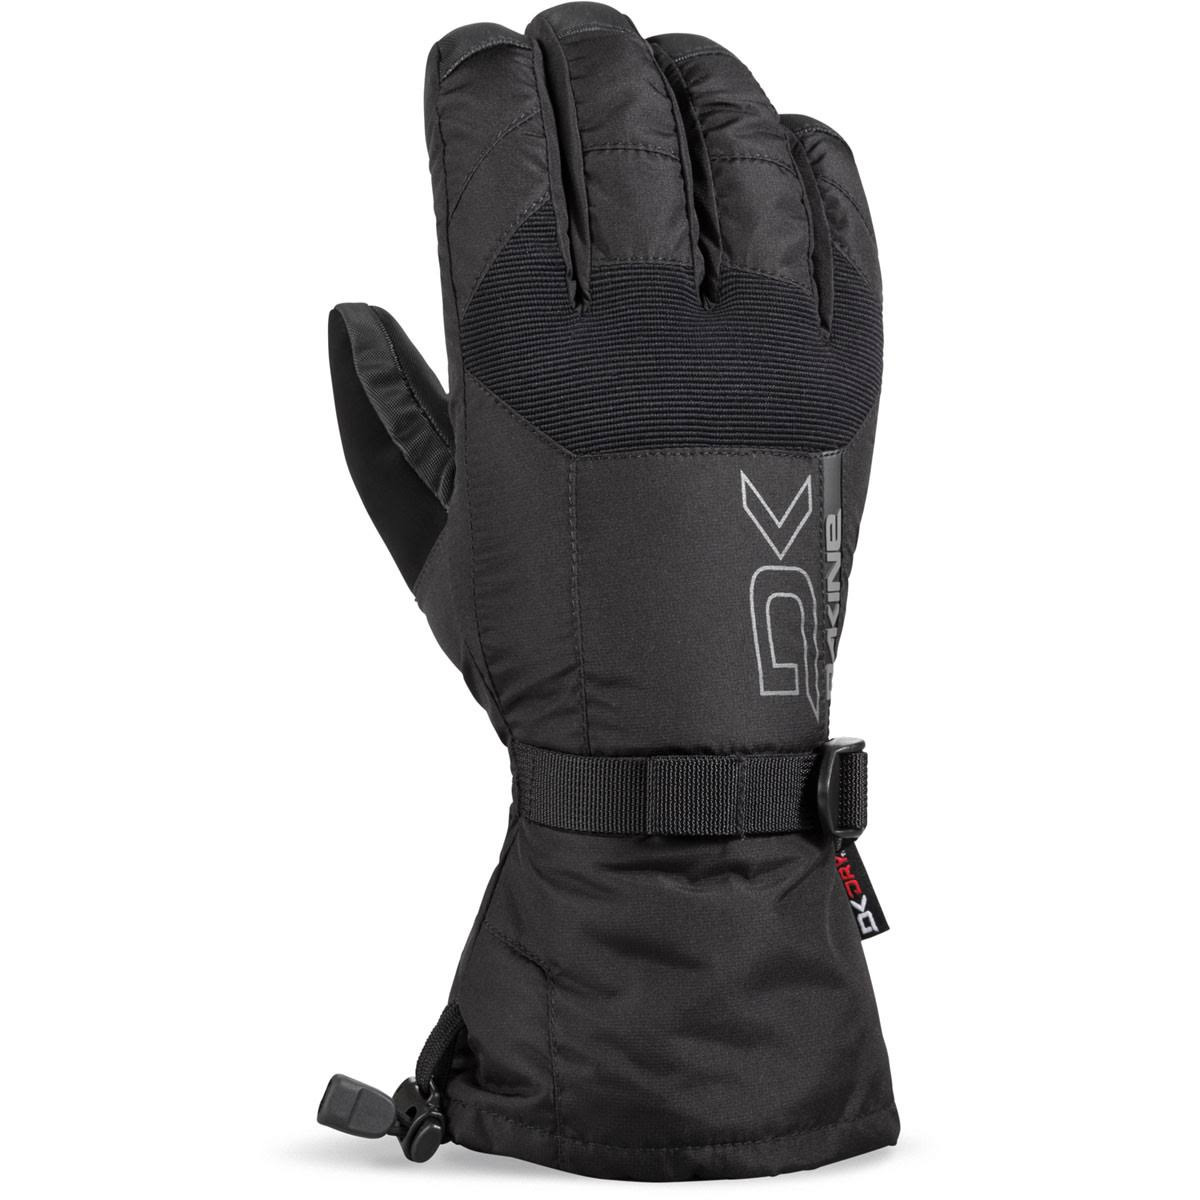 Dakine Men's Scout Gloves - Black, Large